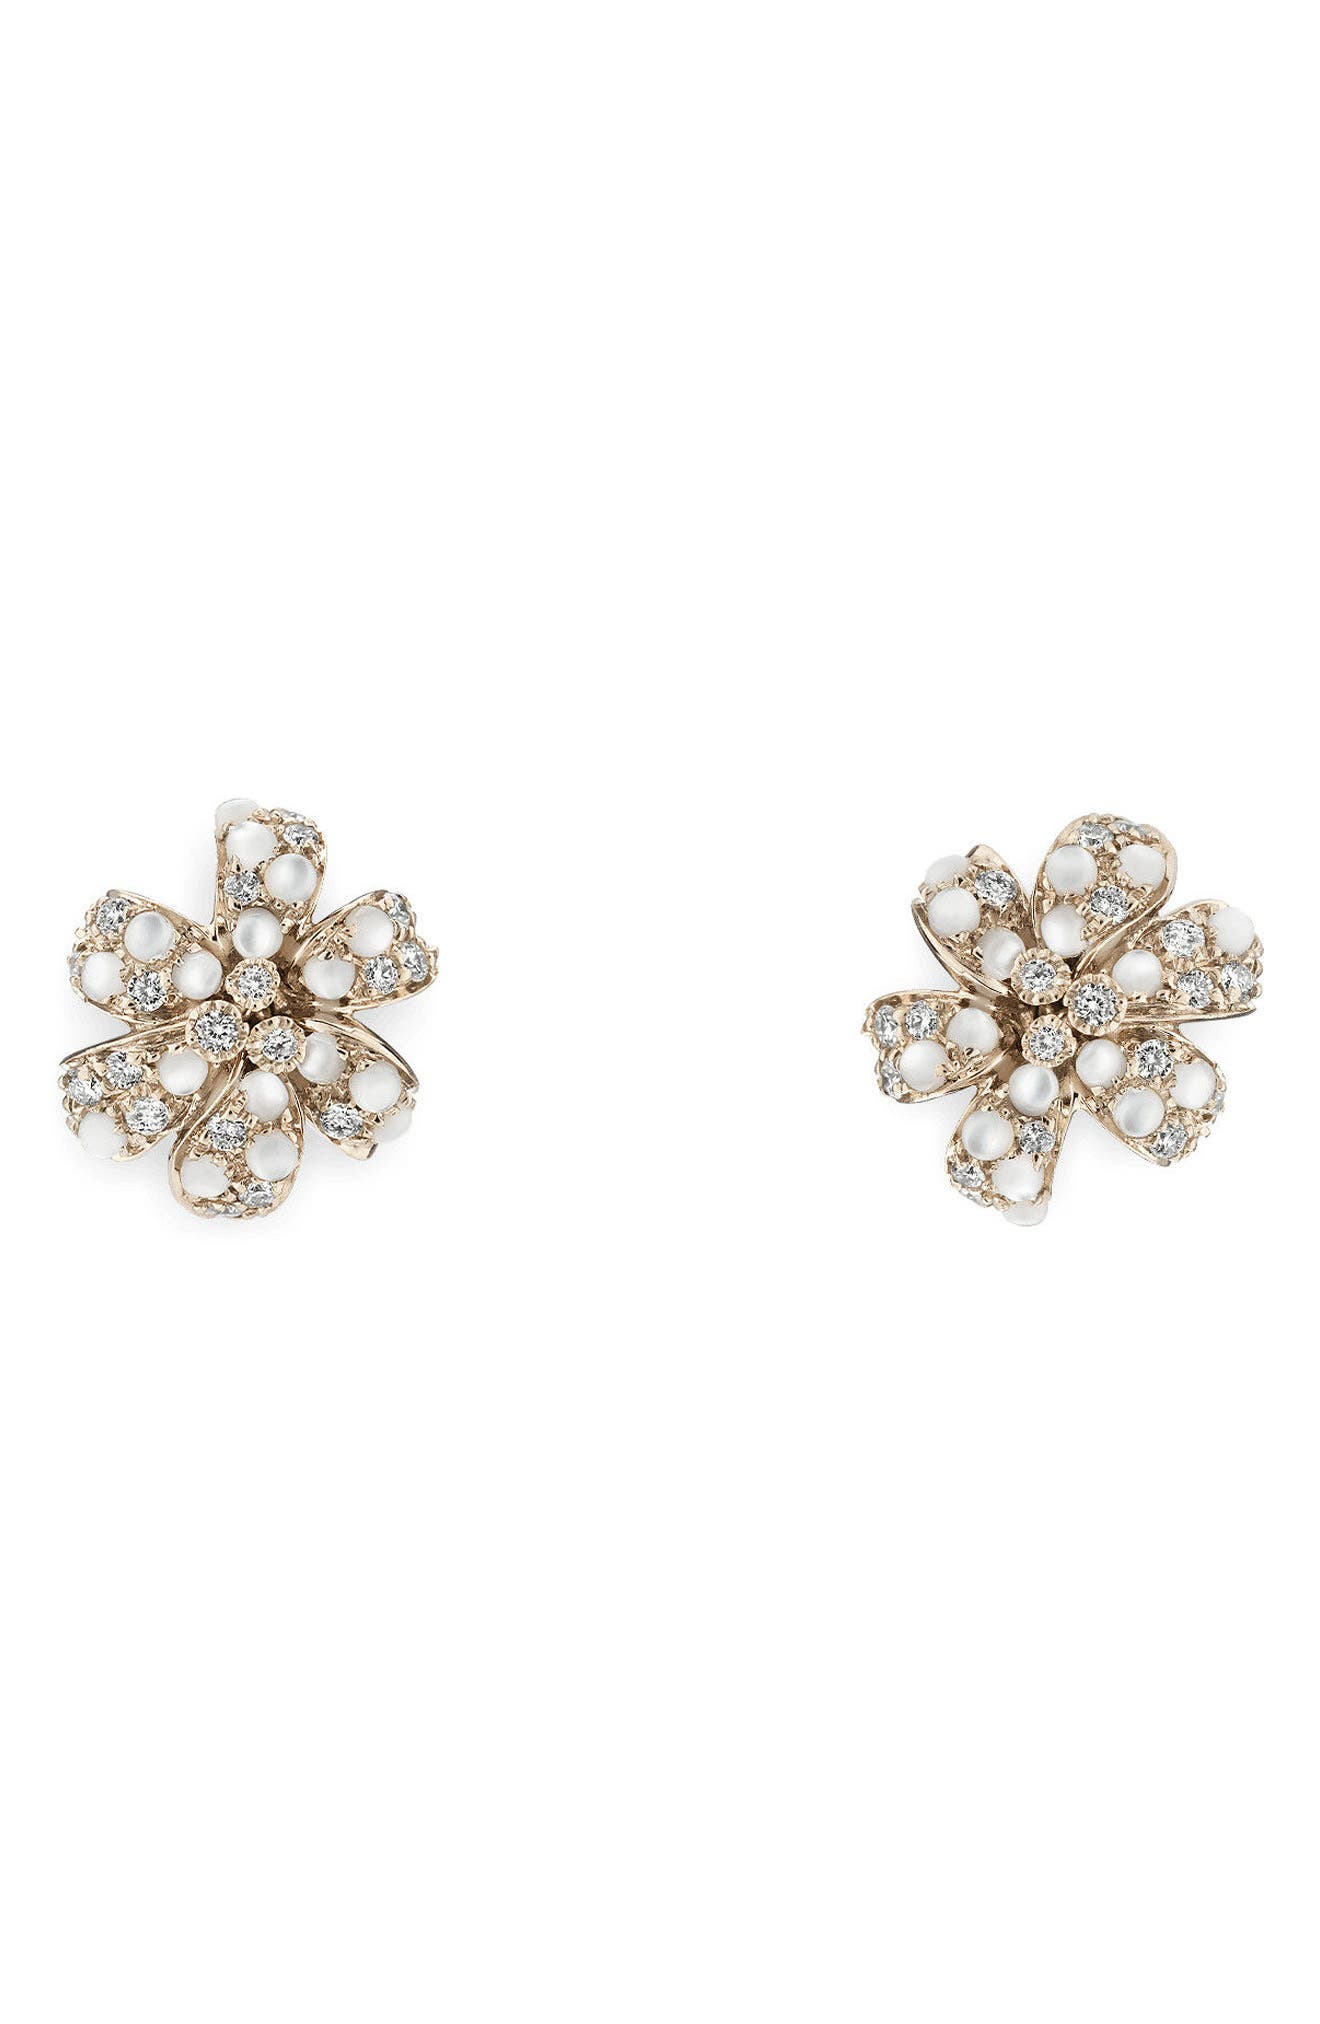 Flora Diamond & Mother of Pearl Stud Earrings,                         Main,                         color, White Gold